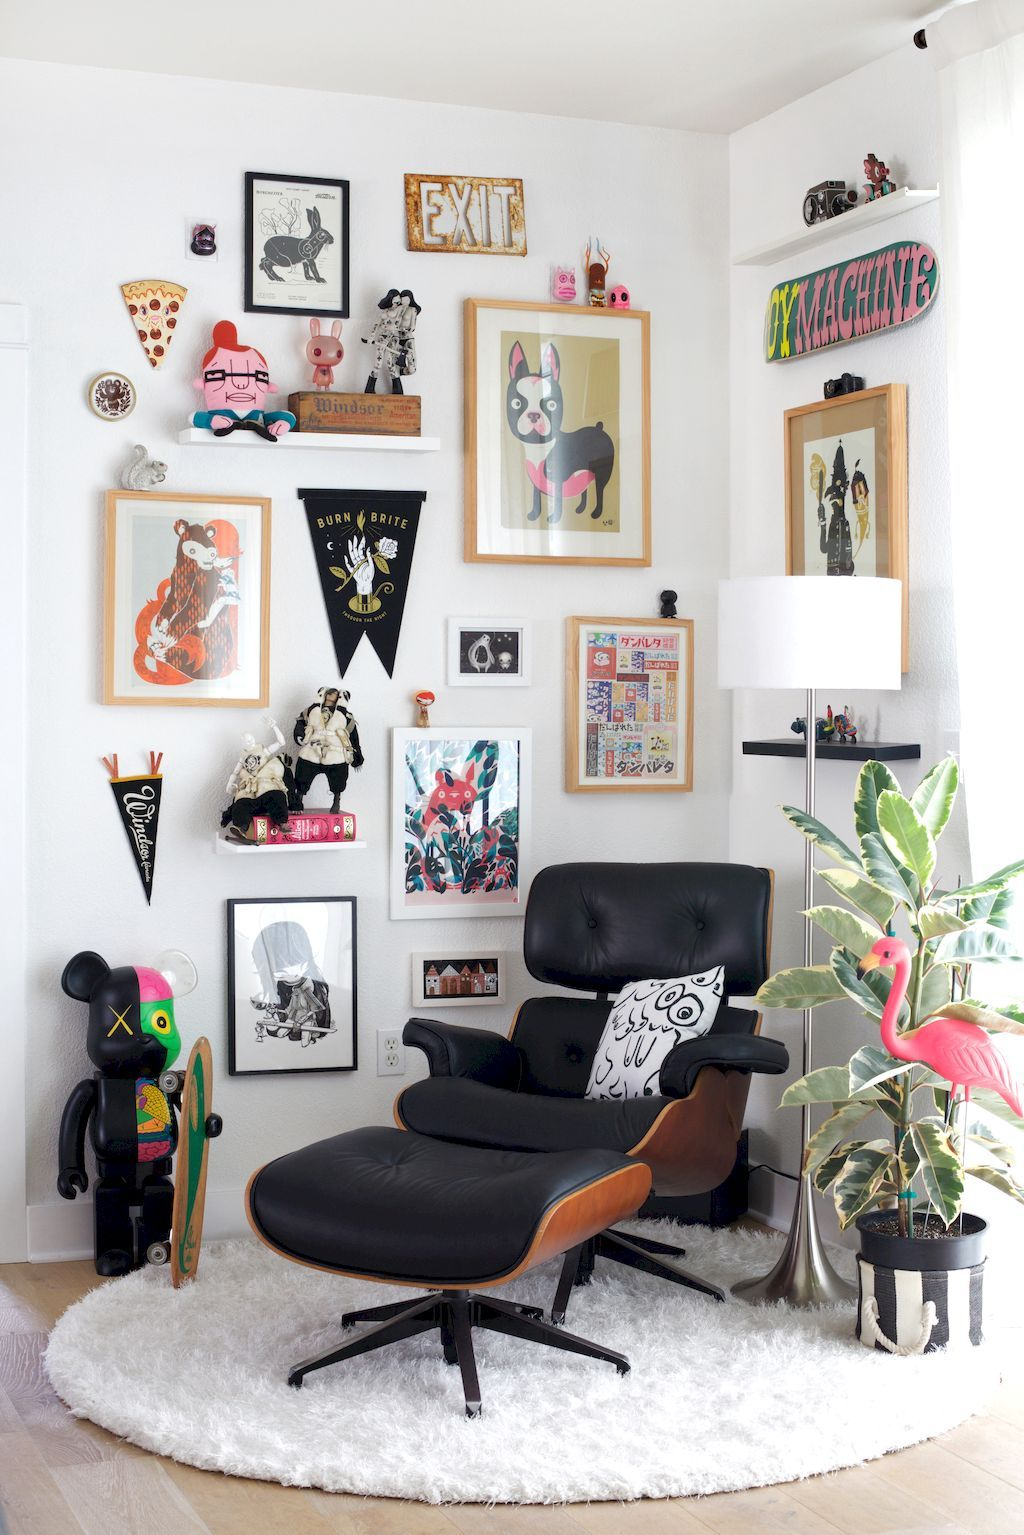 60 Eclectic Bedroom Decorating Ideas for Apartment   Apartments ...